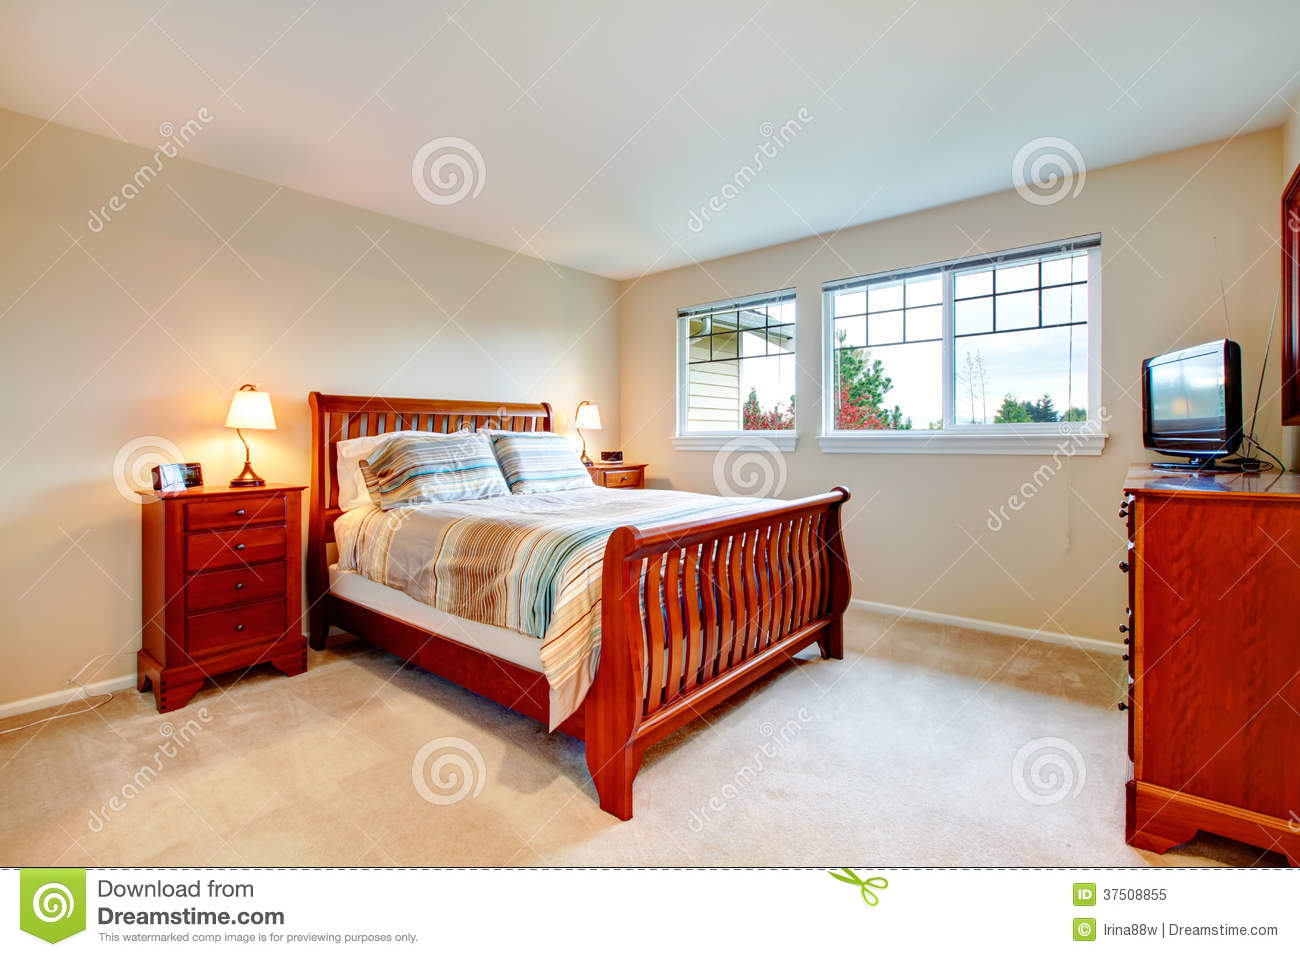 Warm Colors Bedroom With Wood Furniture Royalty Free Stock Photo Image 37508855